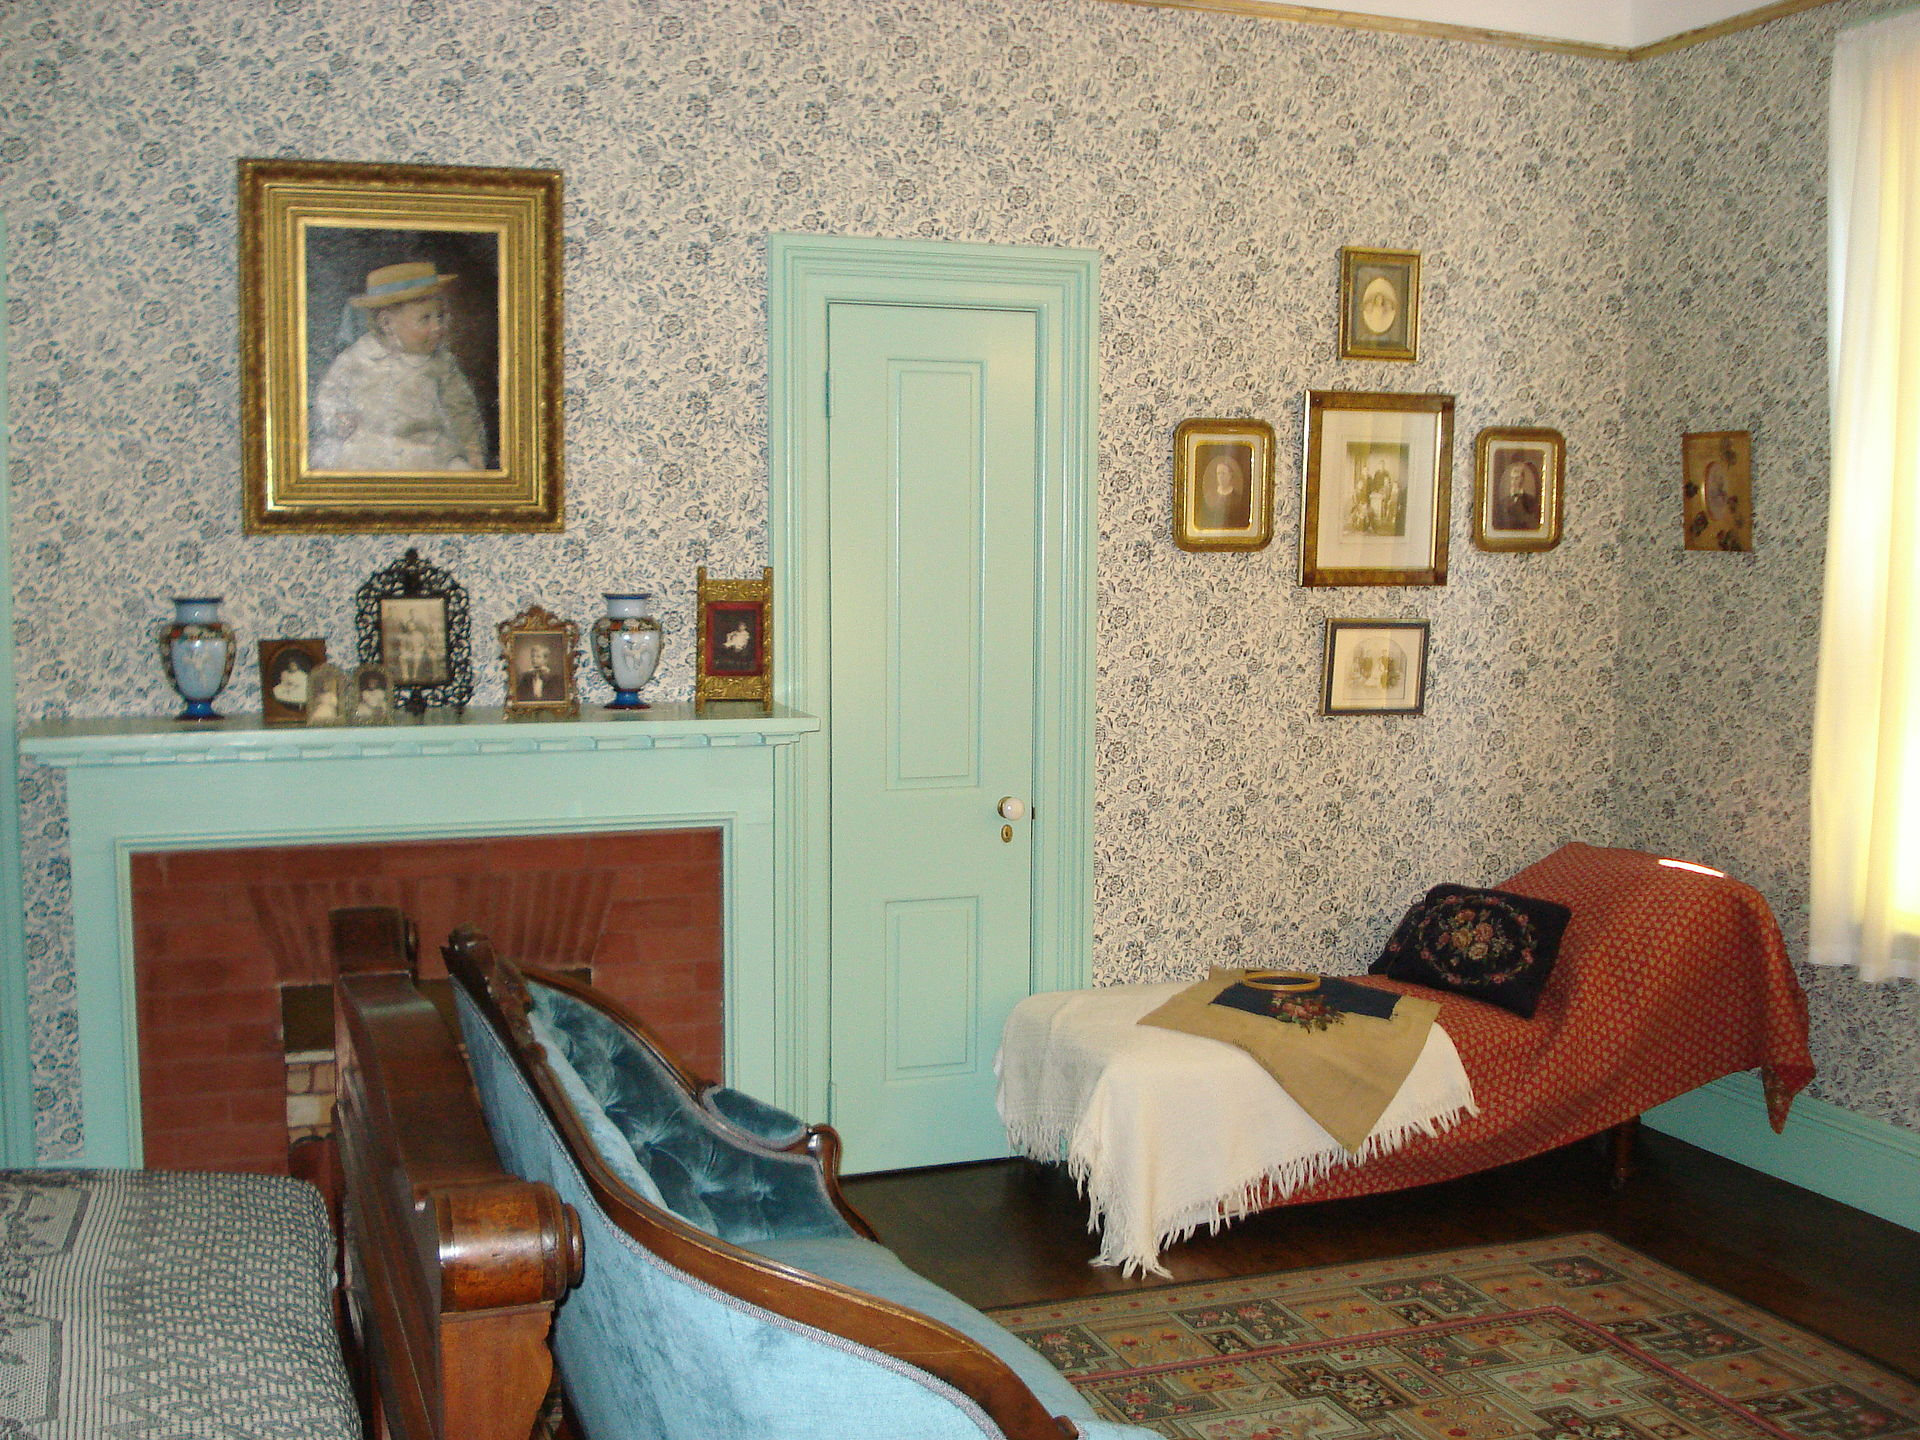 Bedroom in Garfield's Mentor Ohio Home